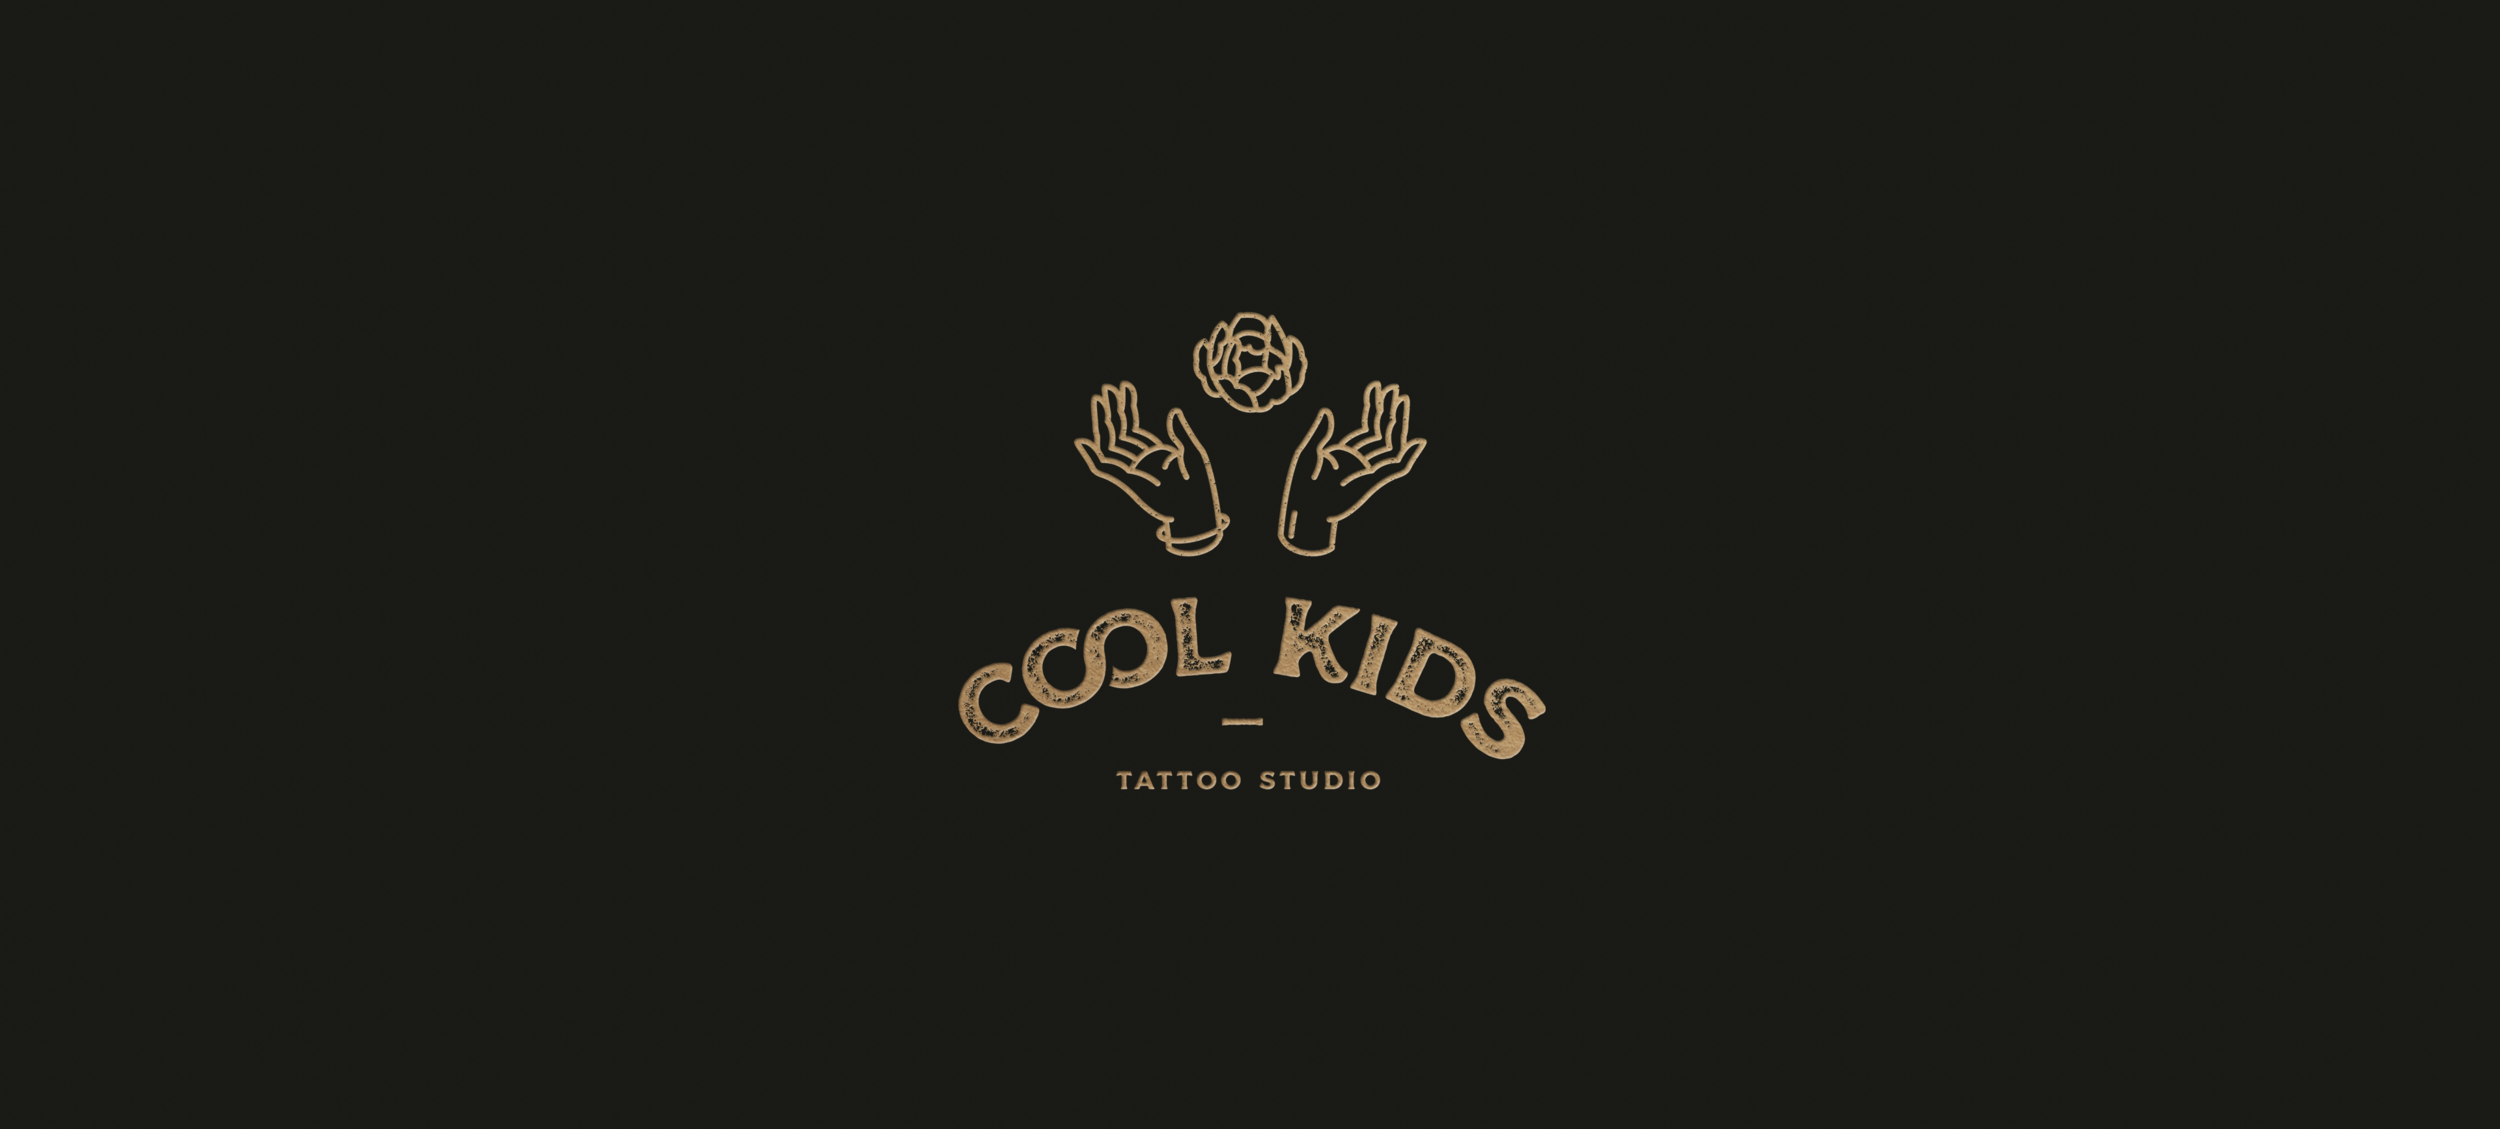 Made by Zsofia - Cool Kids Tattoo Studio6.png